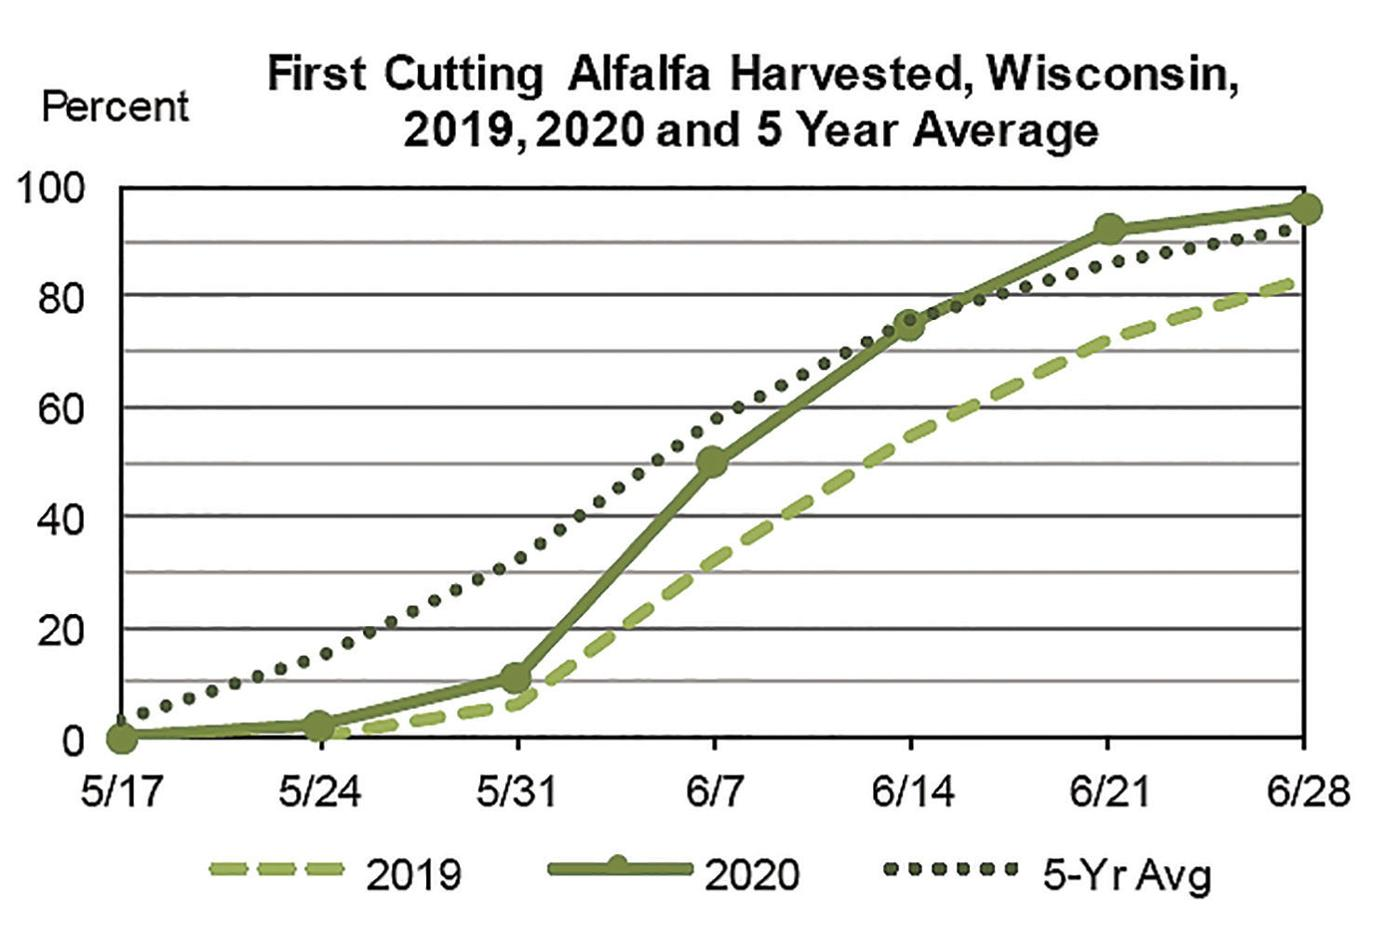 First Cut Alfalfa Harvested 2019, 2020 and 5-year Average